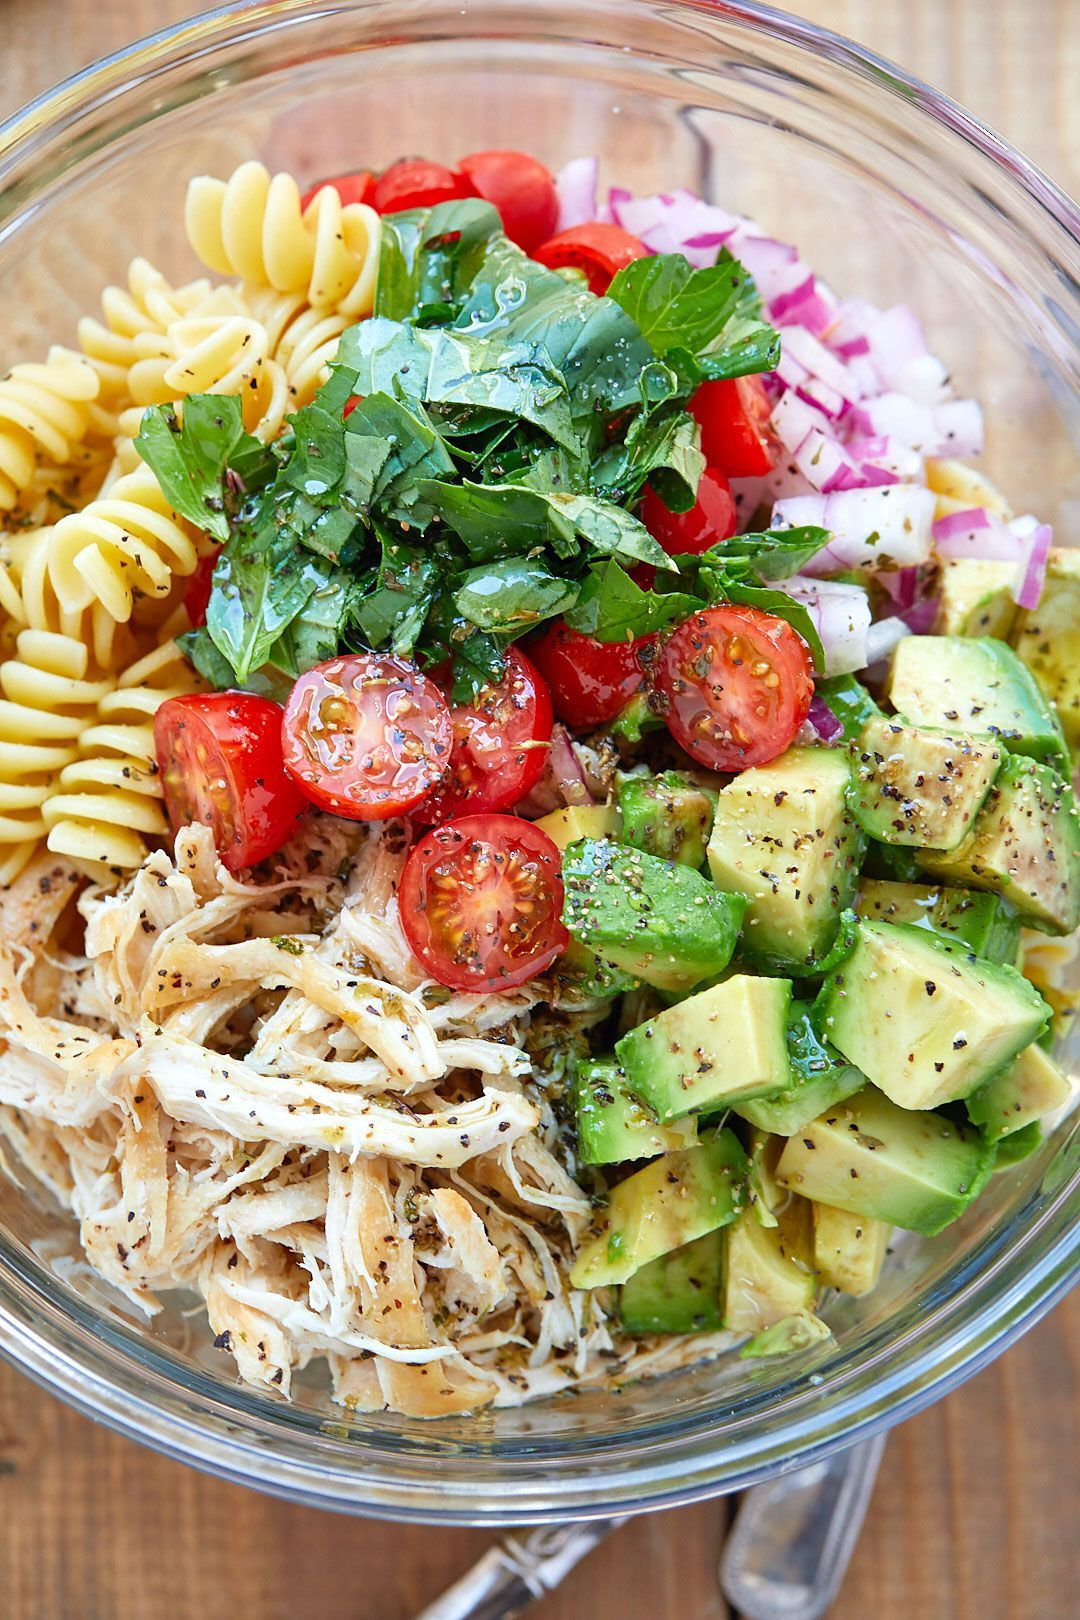 Healthy Chicken Pasta Salad - #chicken #salad #eatwell101 #recipe - Packed with flavor, protein and veggies! This healthy chicken pasta salad is loaded with tomatoes, avocado, and fresh basil. - #recipe by #eatwell101 #lunchrecipes